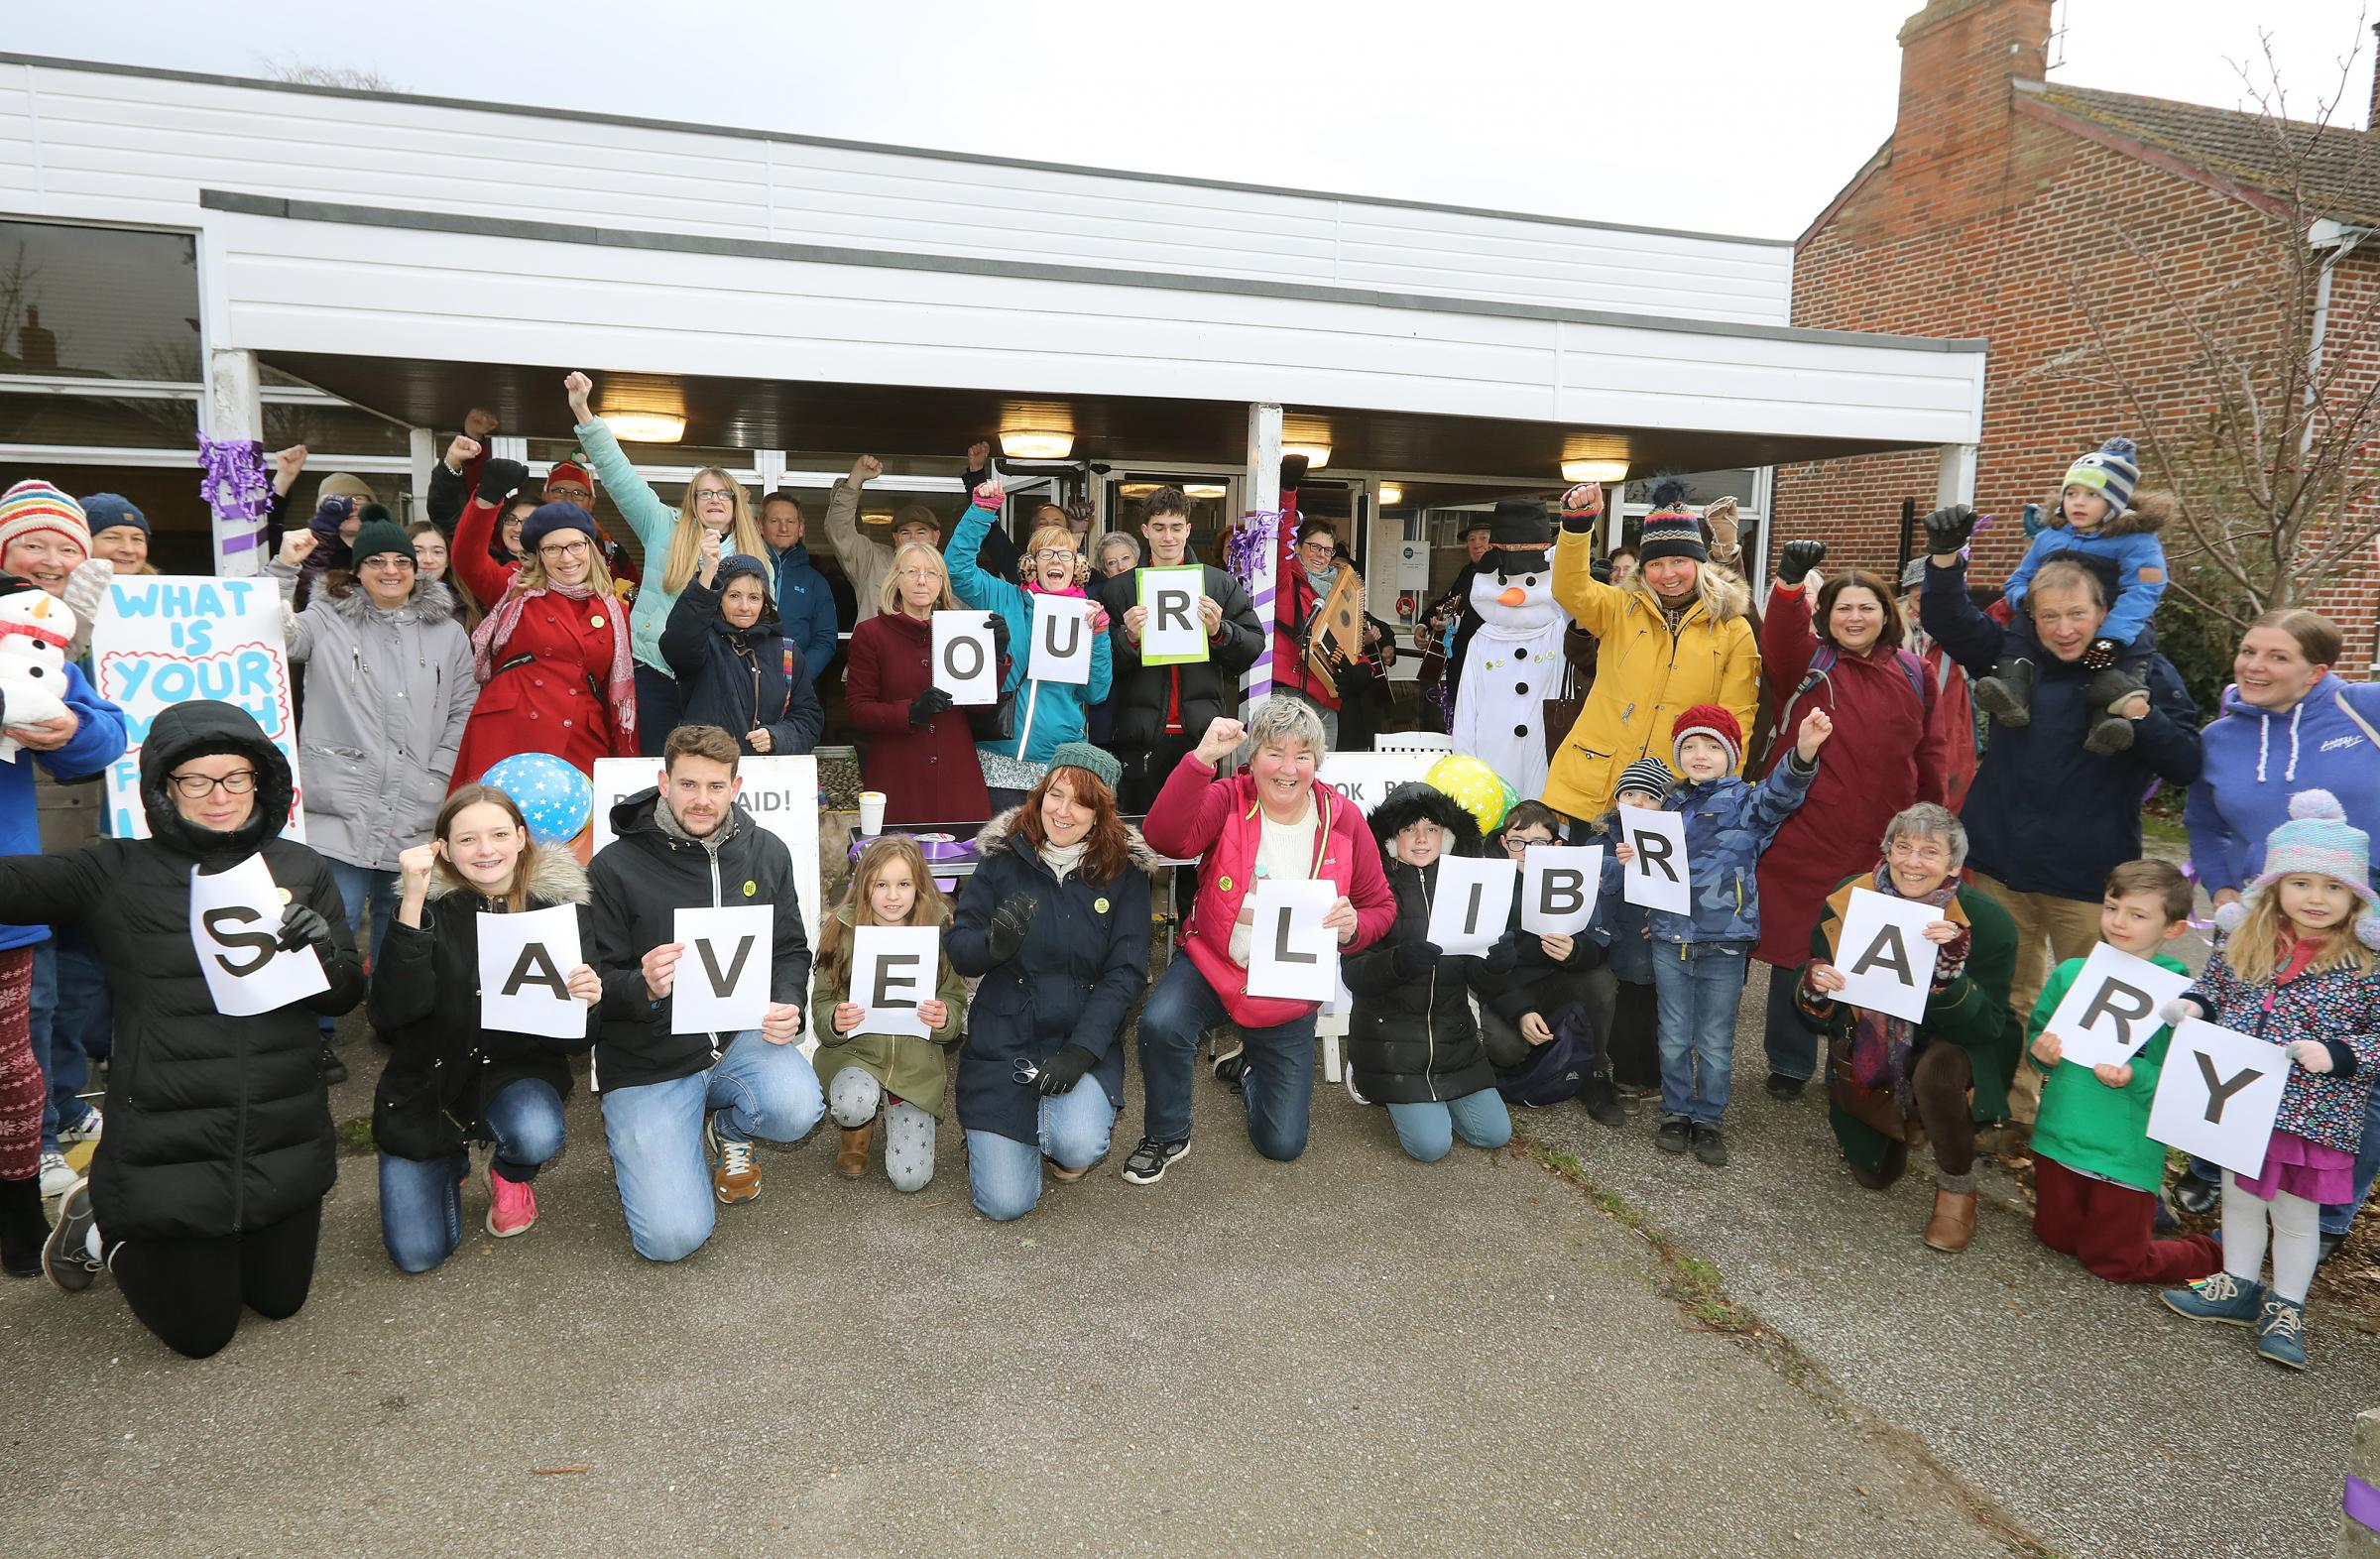 Lively - families voiced their opinions outside Wivenhoe Library on Saturday